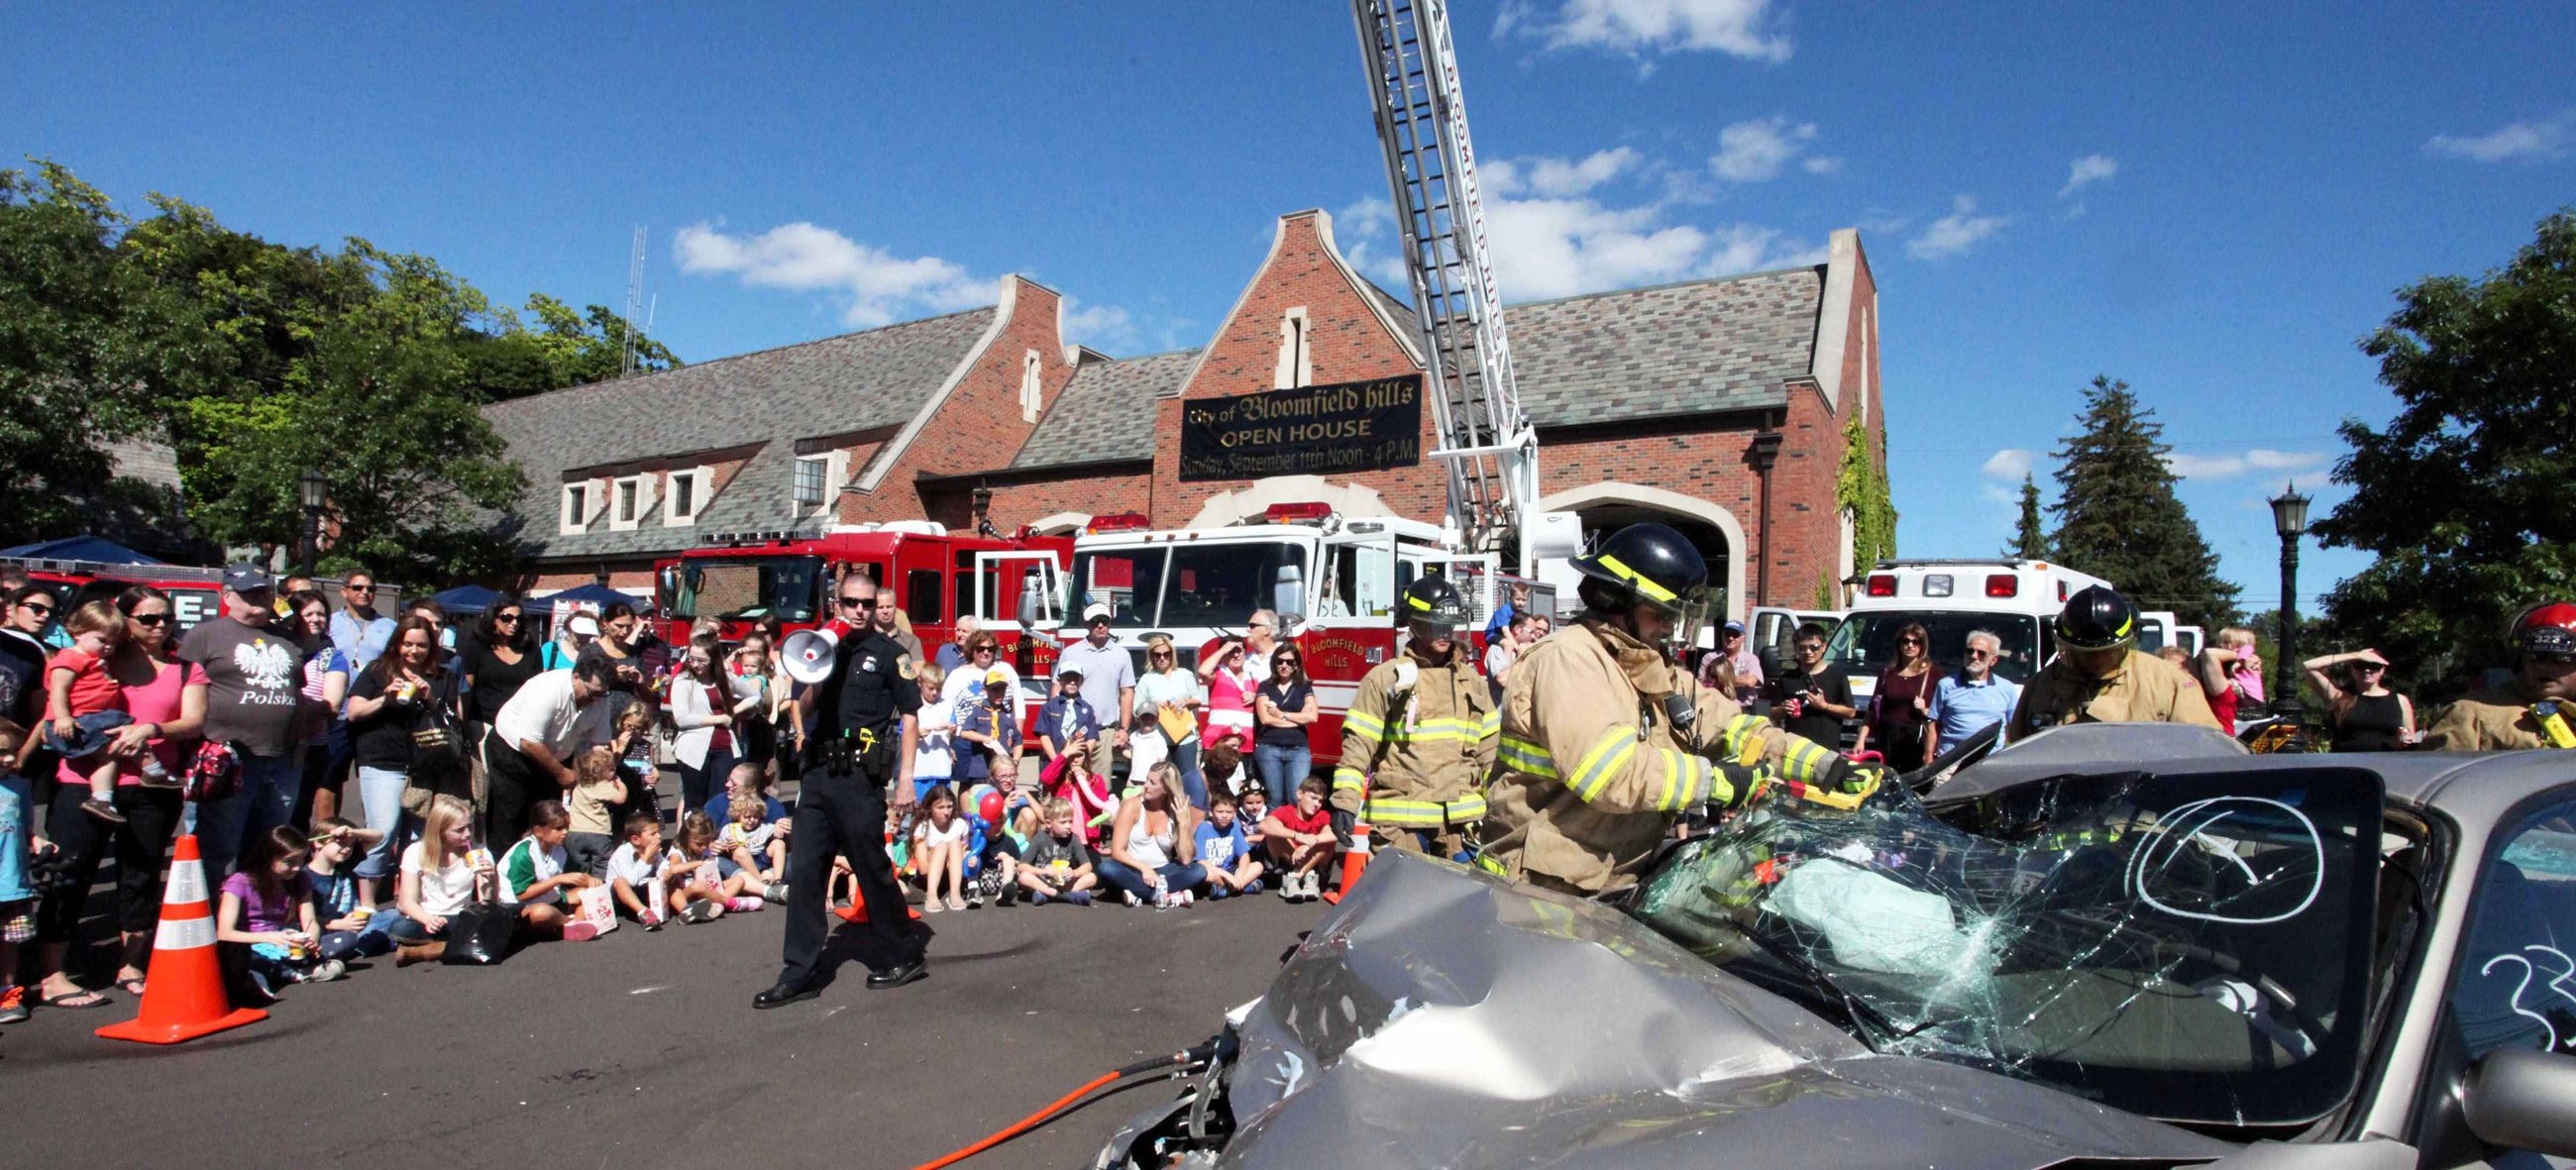 Citizens Gathering for Jaws of Life Demonstration